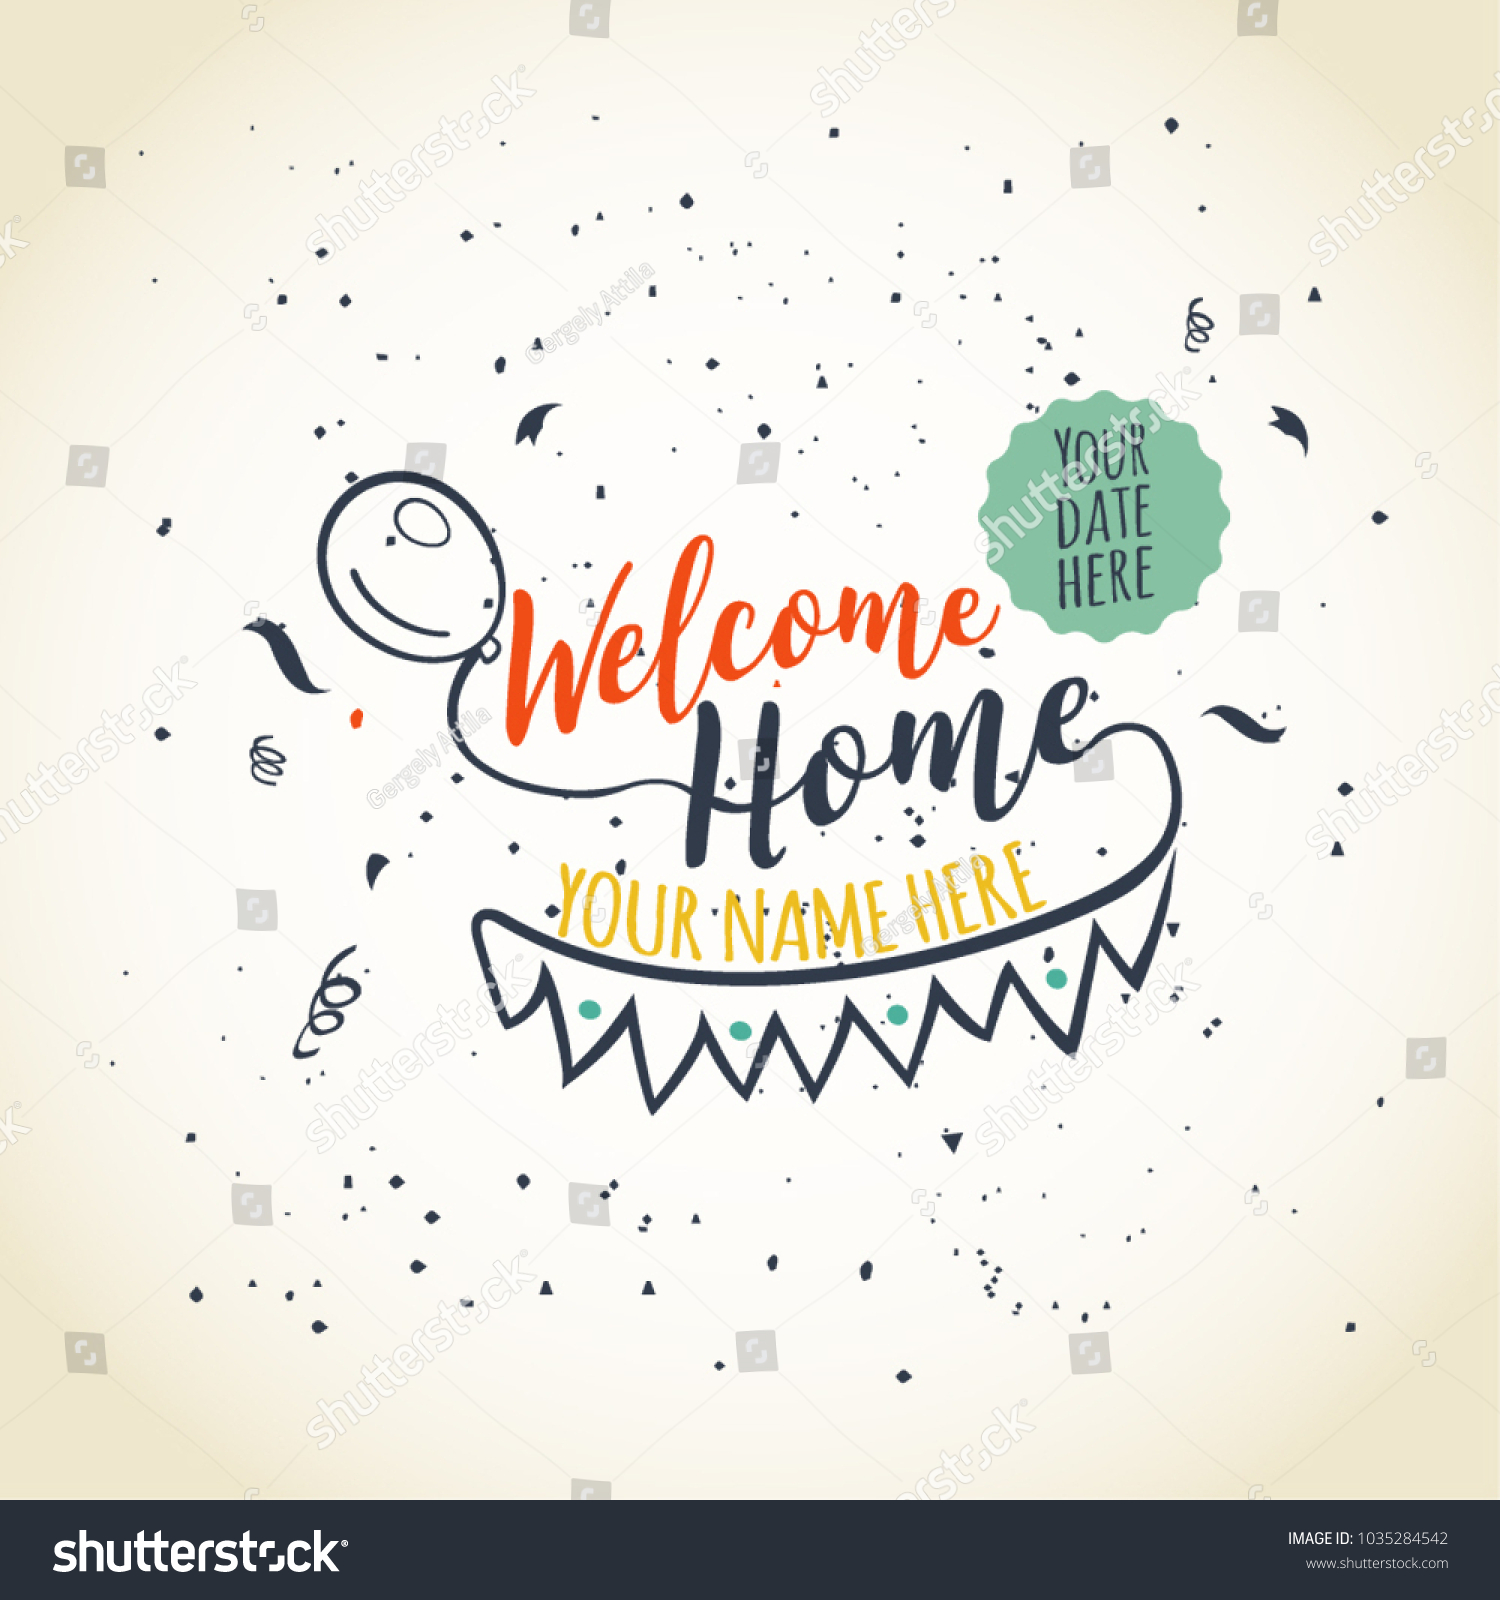 Welcome Home Typographical Greeting Card Design Stock Vector ...